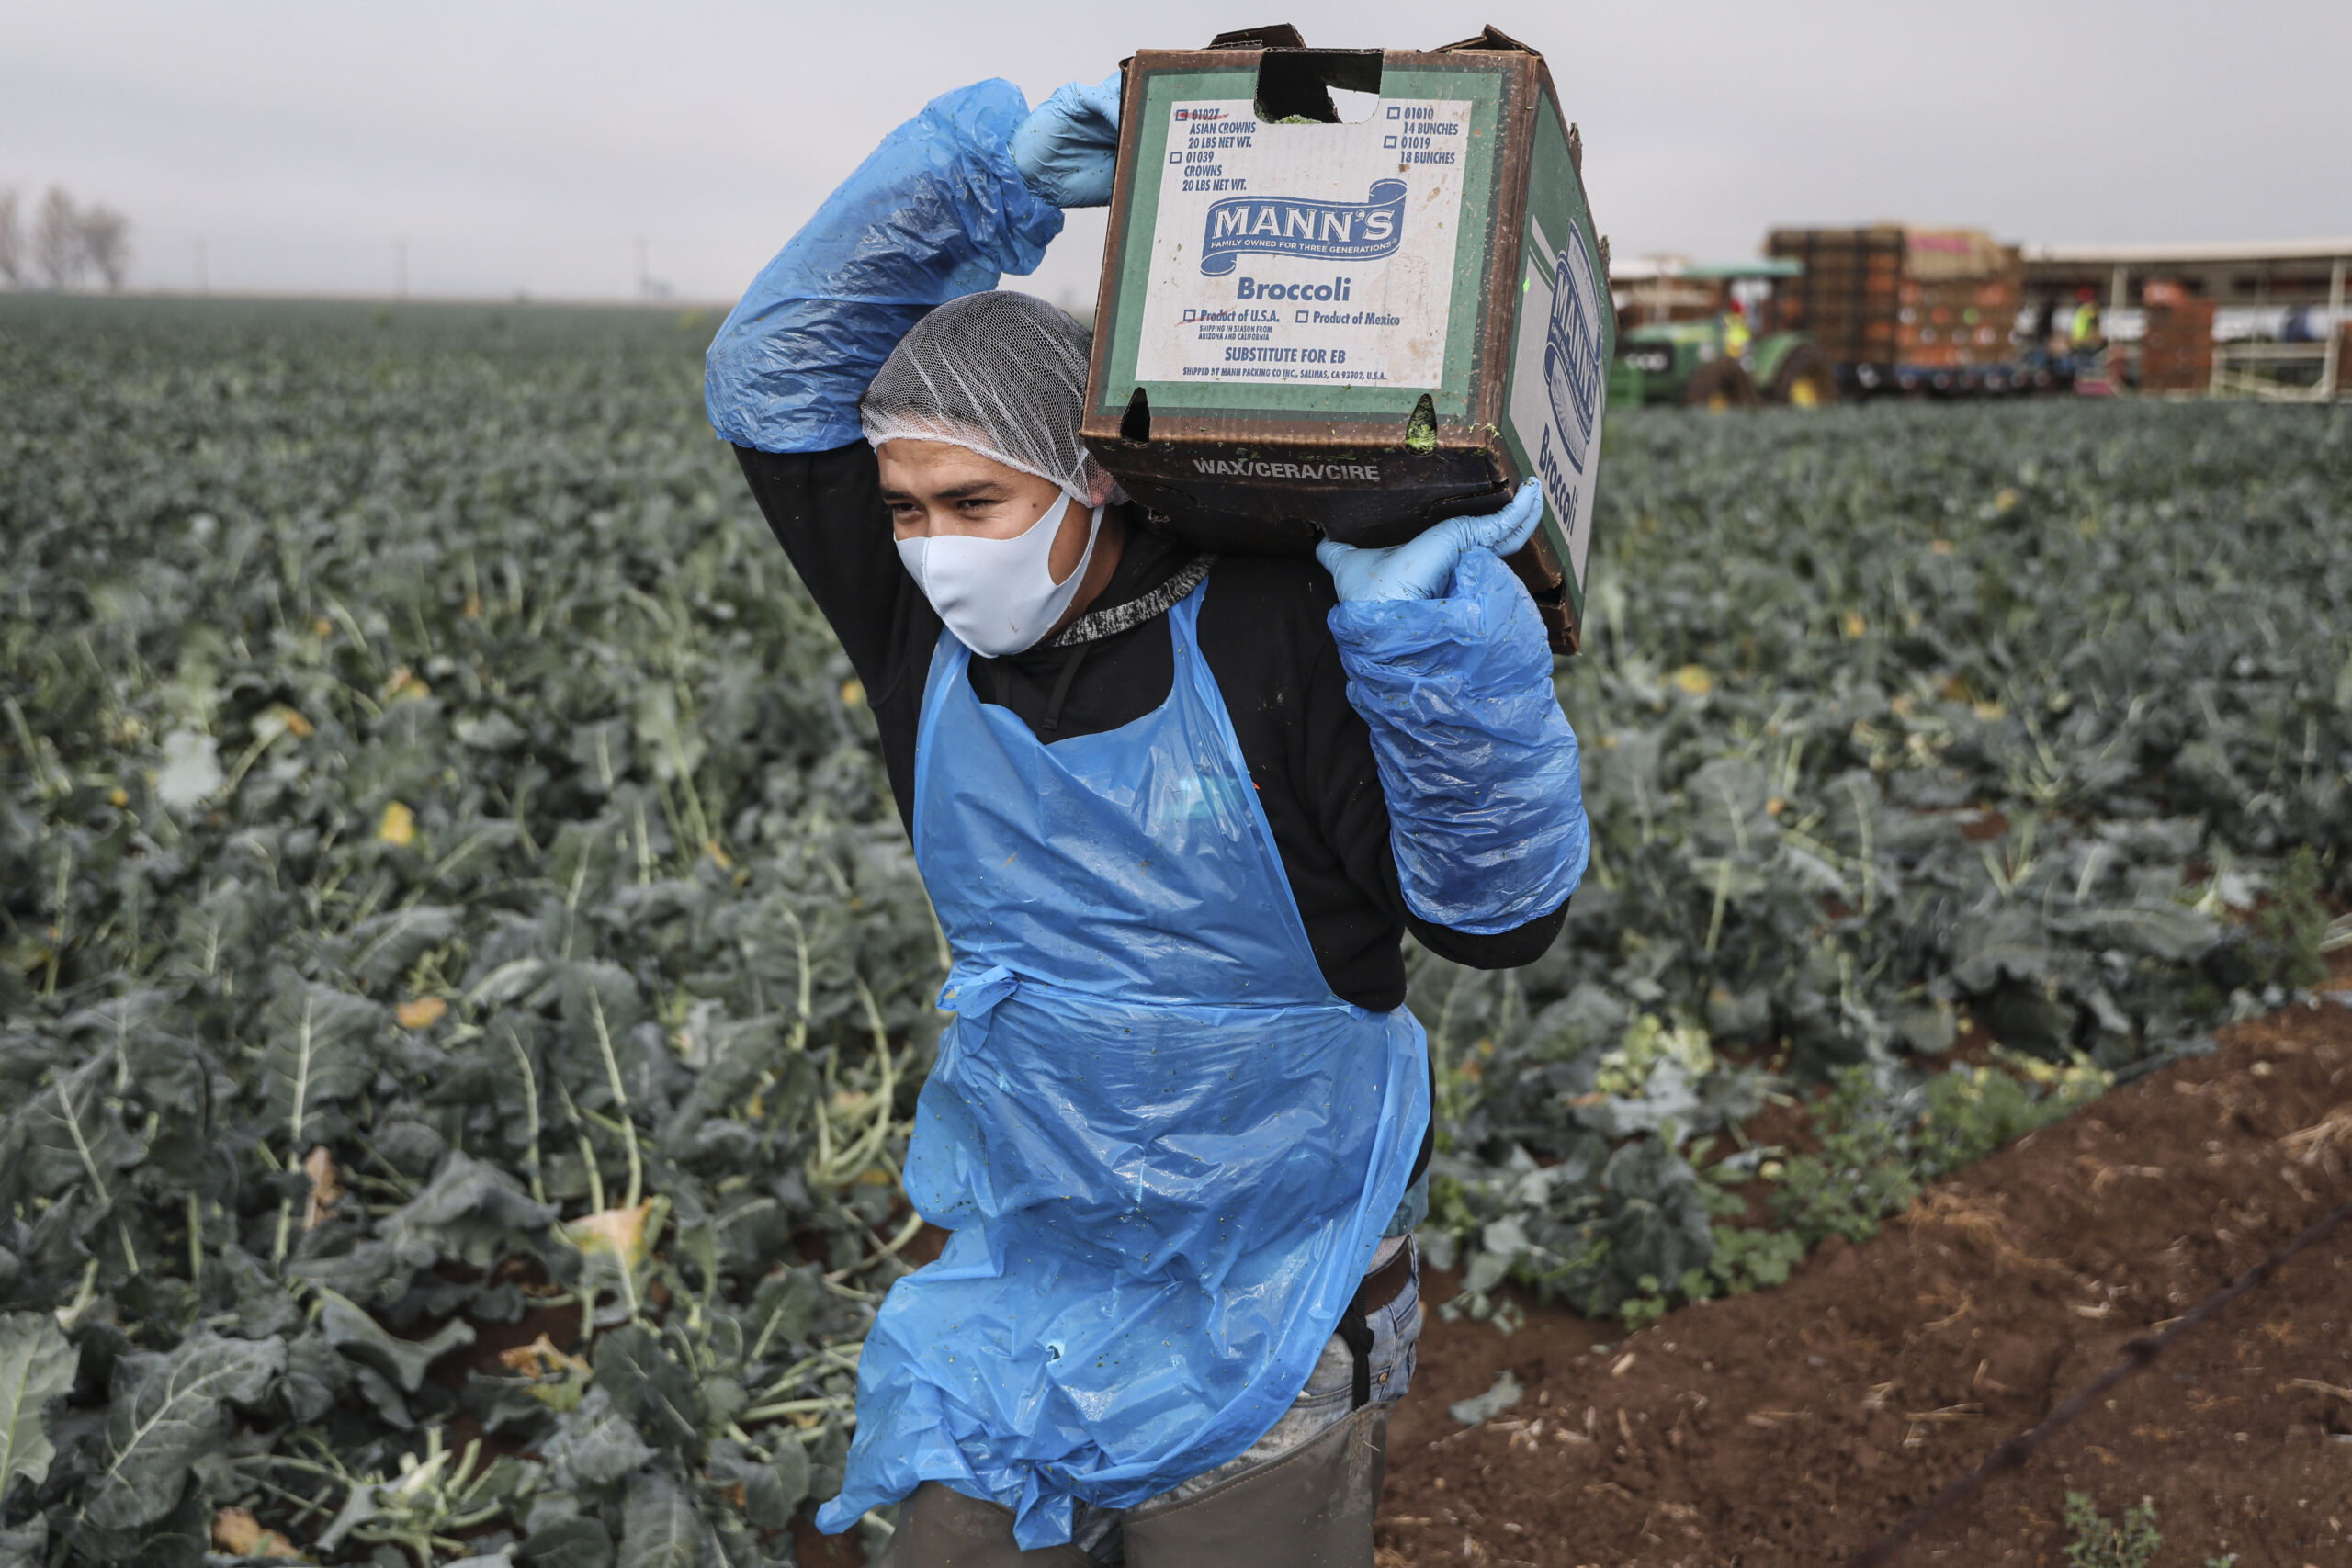 A farmworker carries a box of broccoli in a field on Jan. 22, 2021 in Calexico, California. Credit: Sandy Huffaker/Getty Images